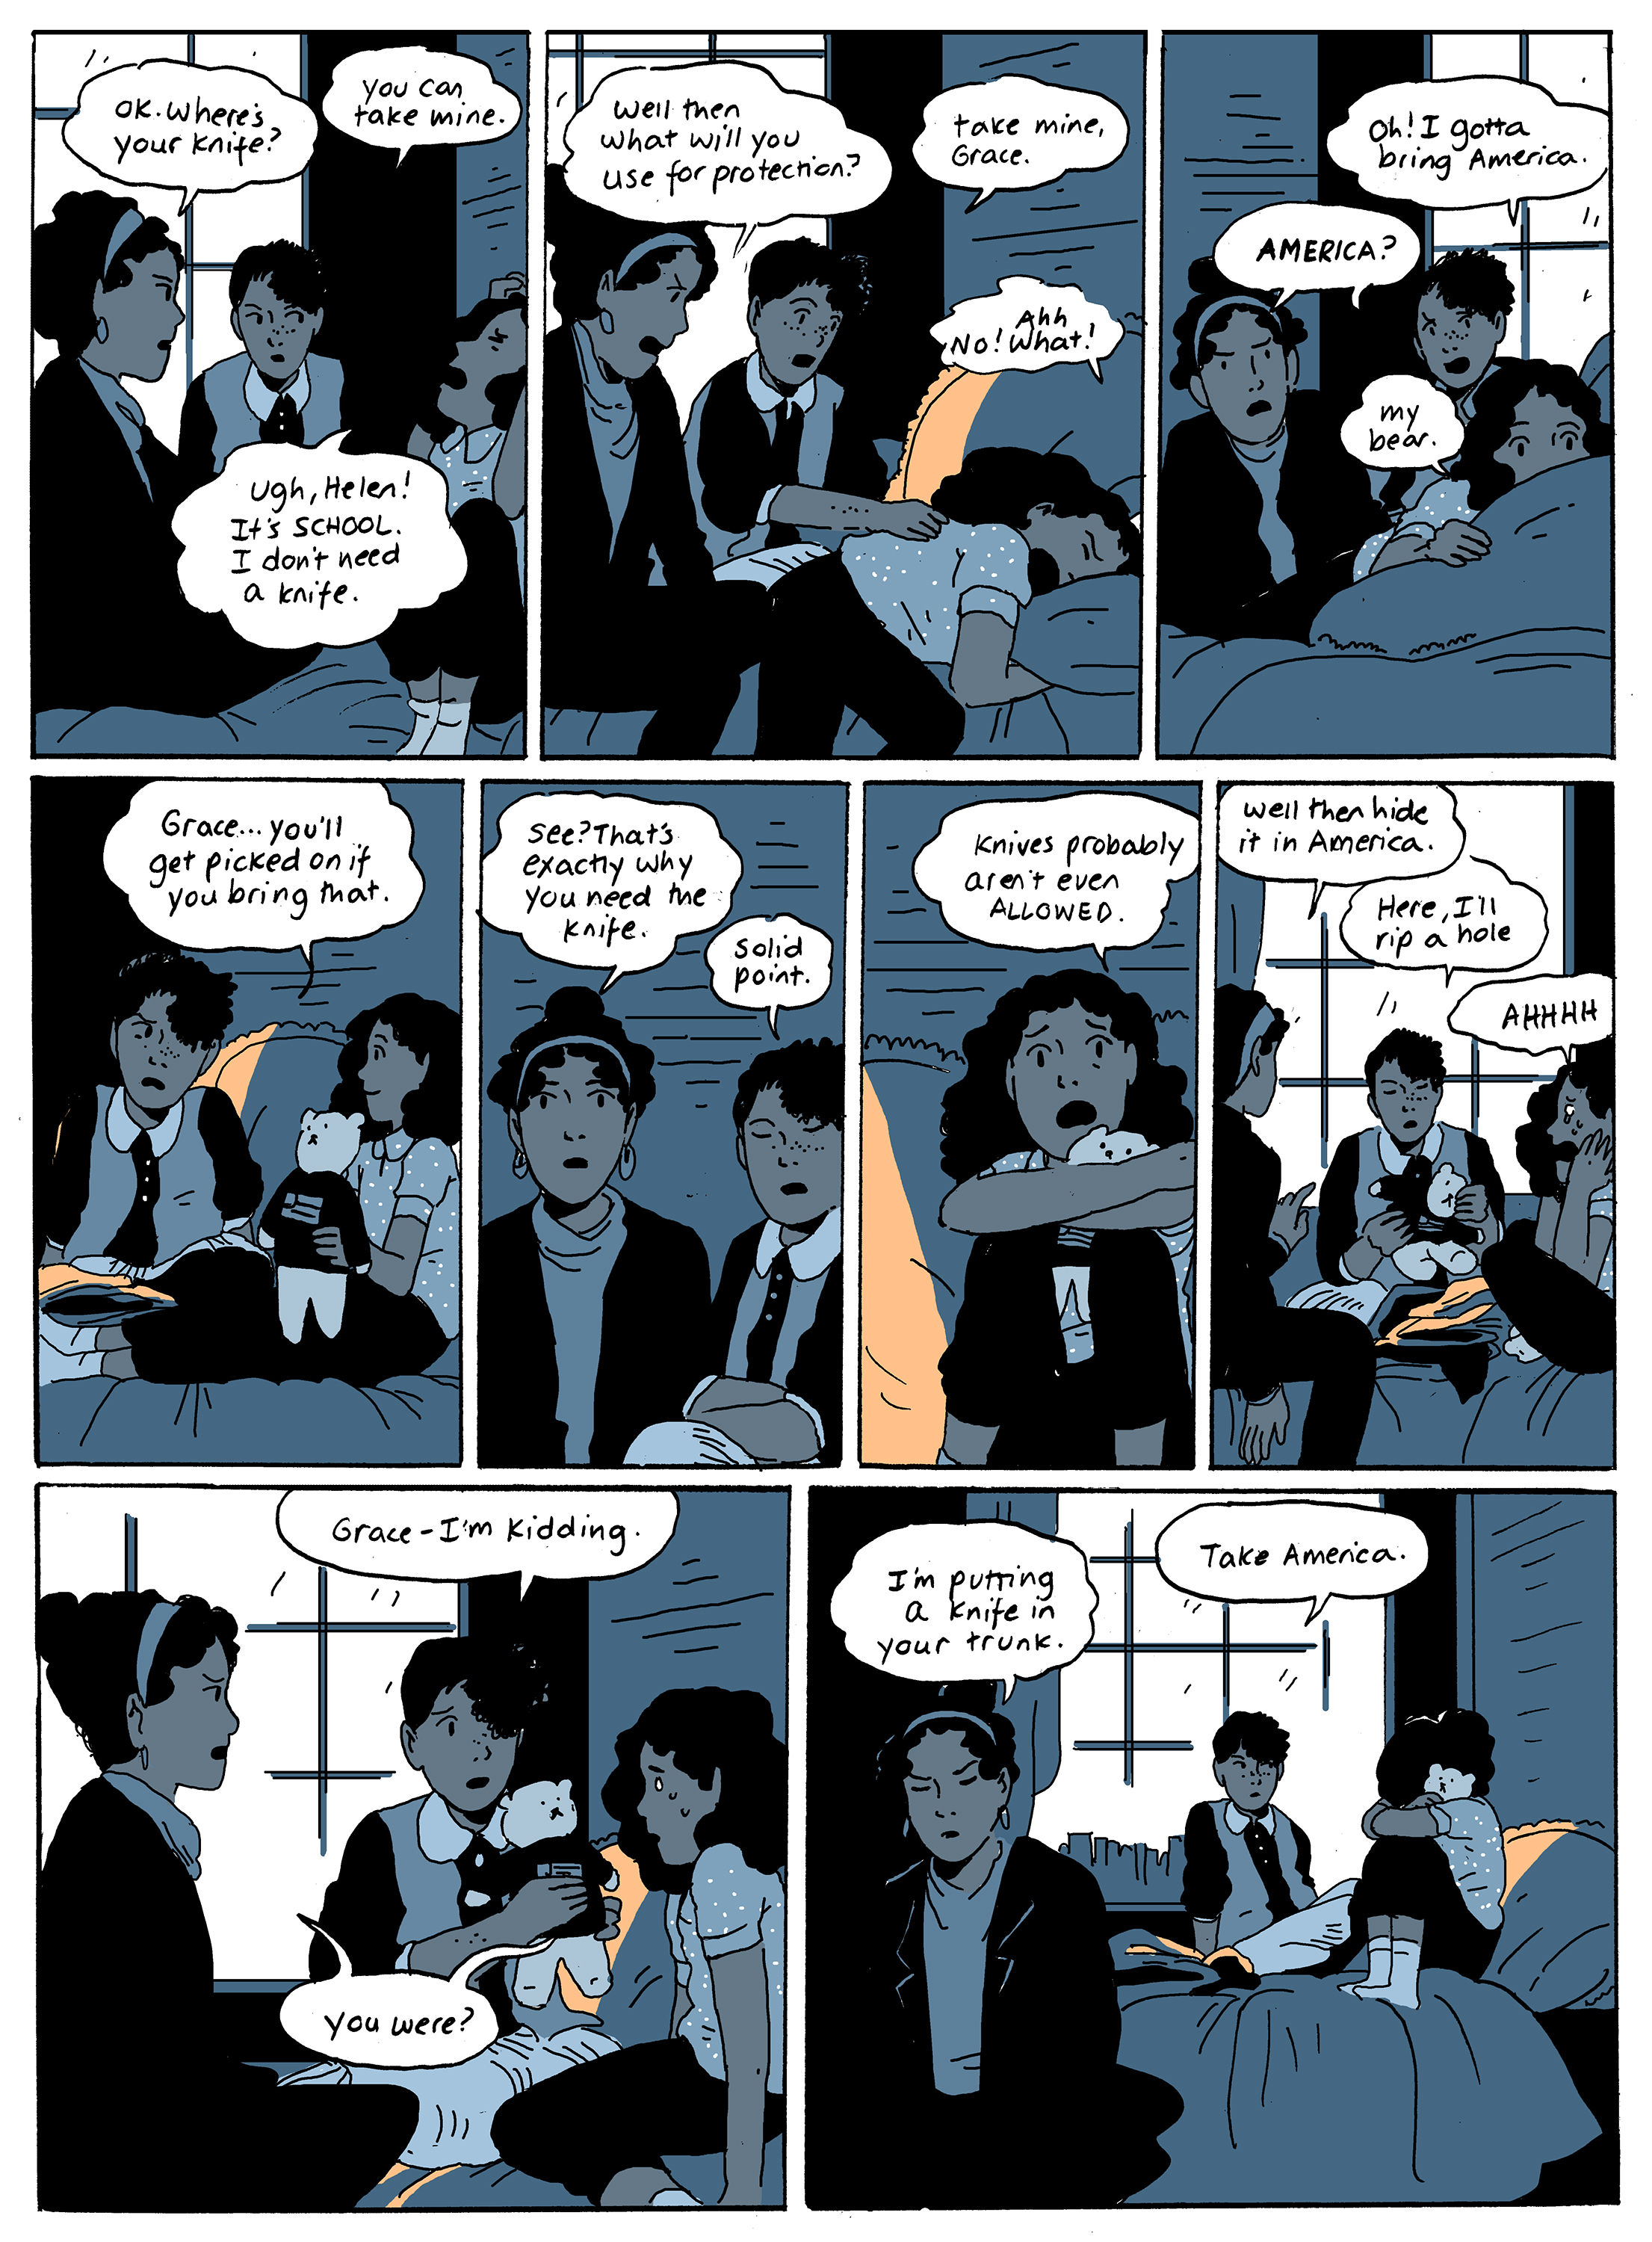 chapter10_page25.jpg